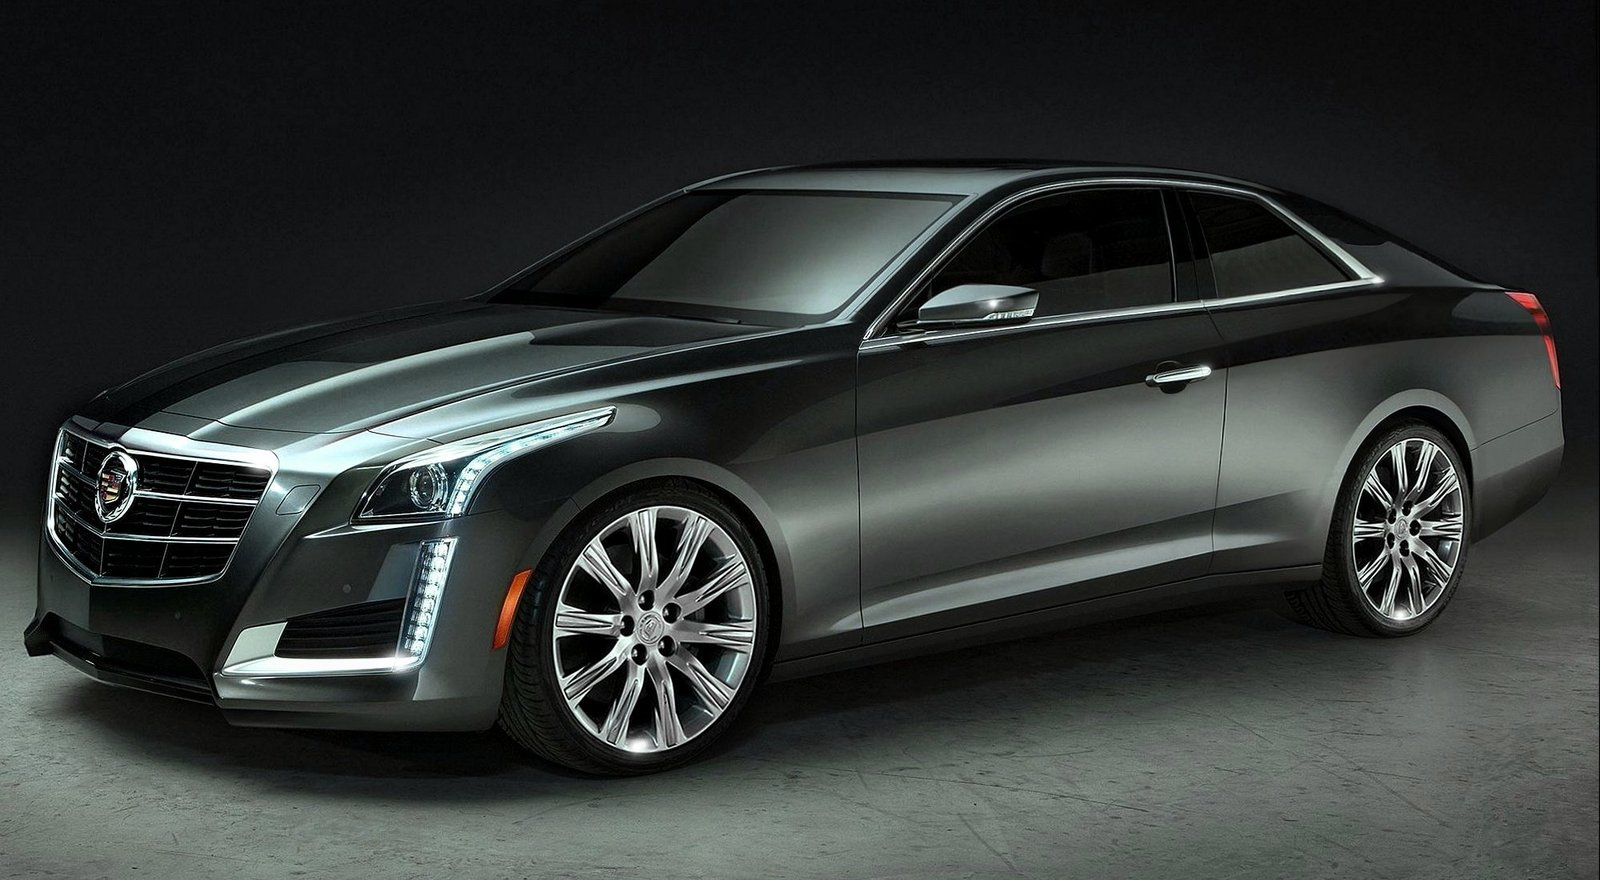 exterior black cts ever models ats series chrome sport brings cadillac first v gm grille for sedan blog carbon package and